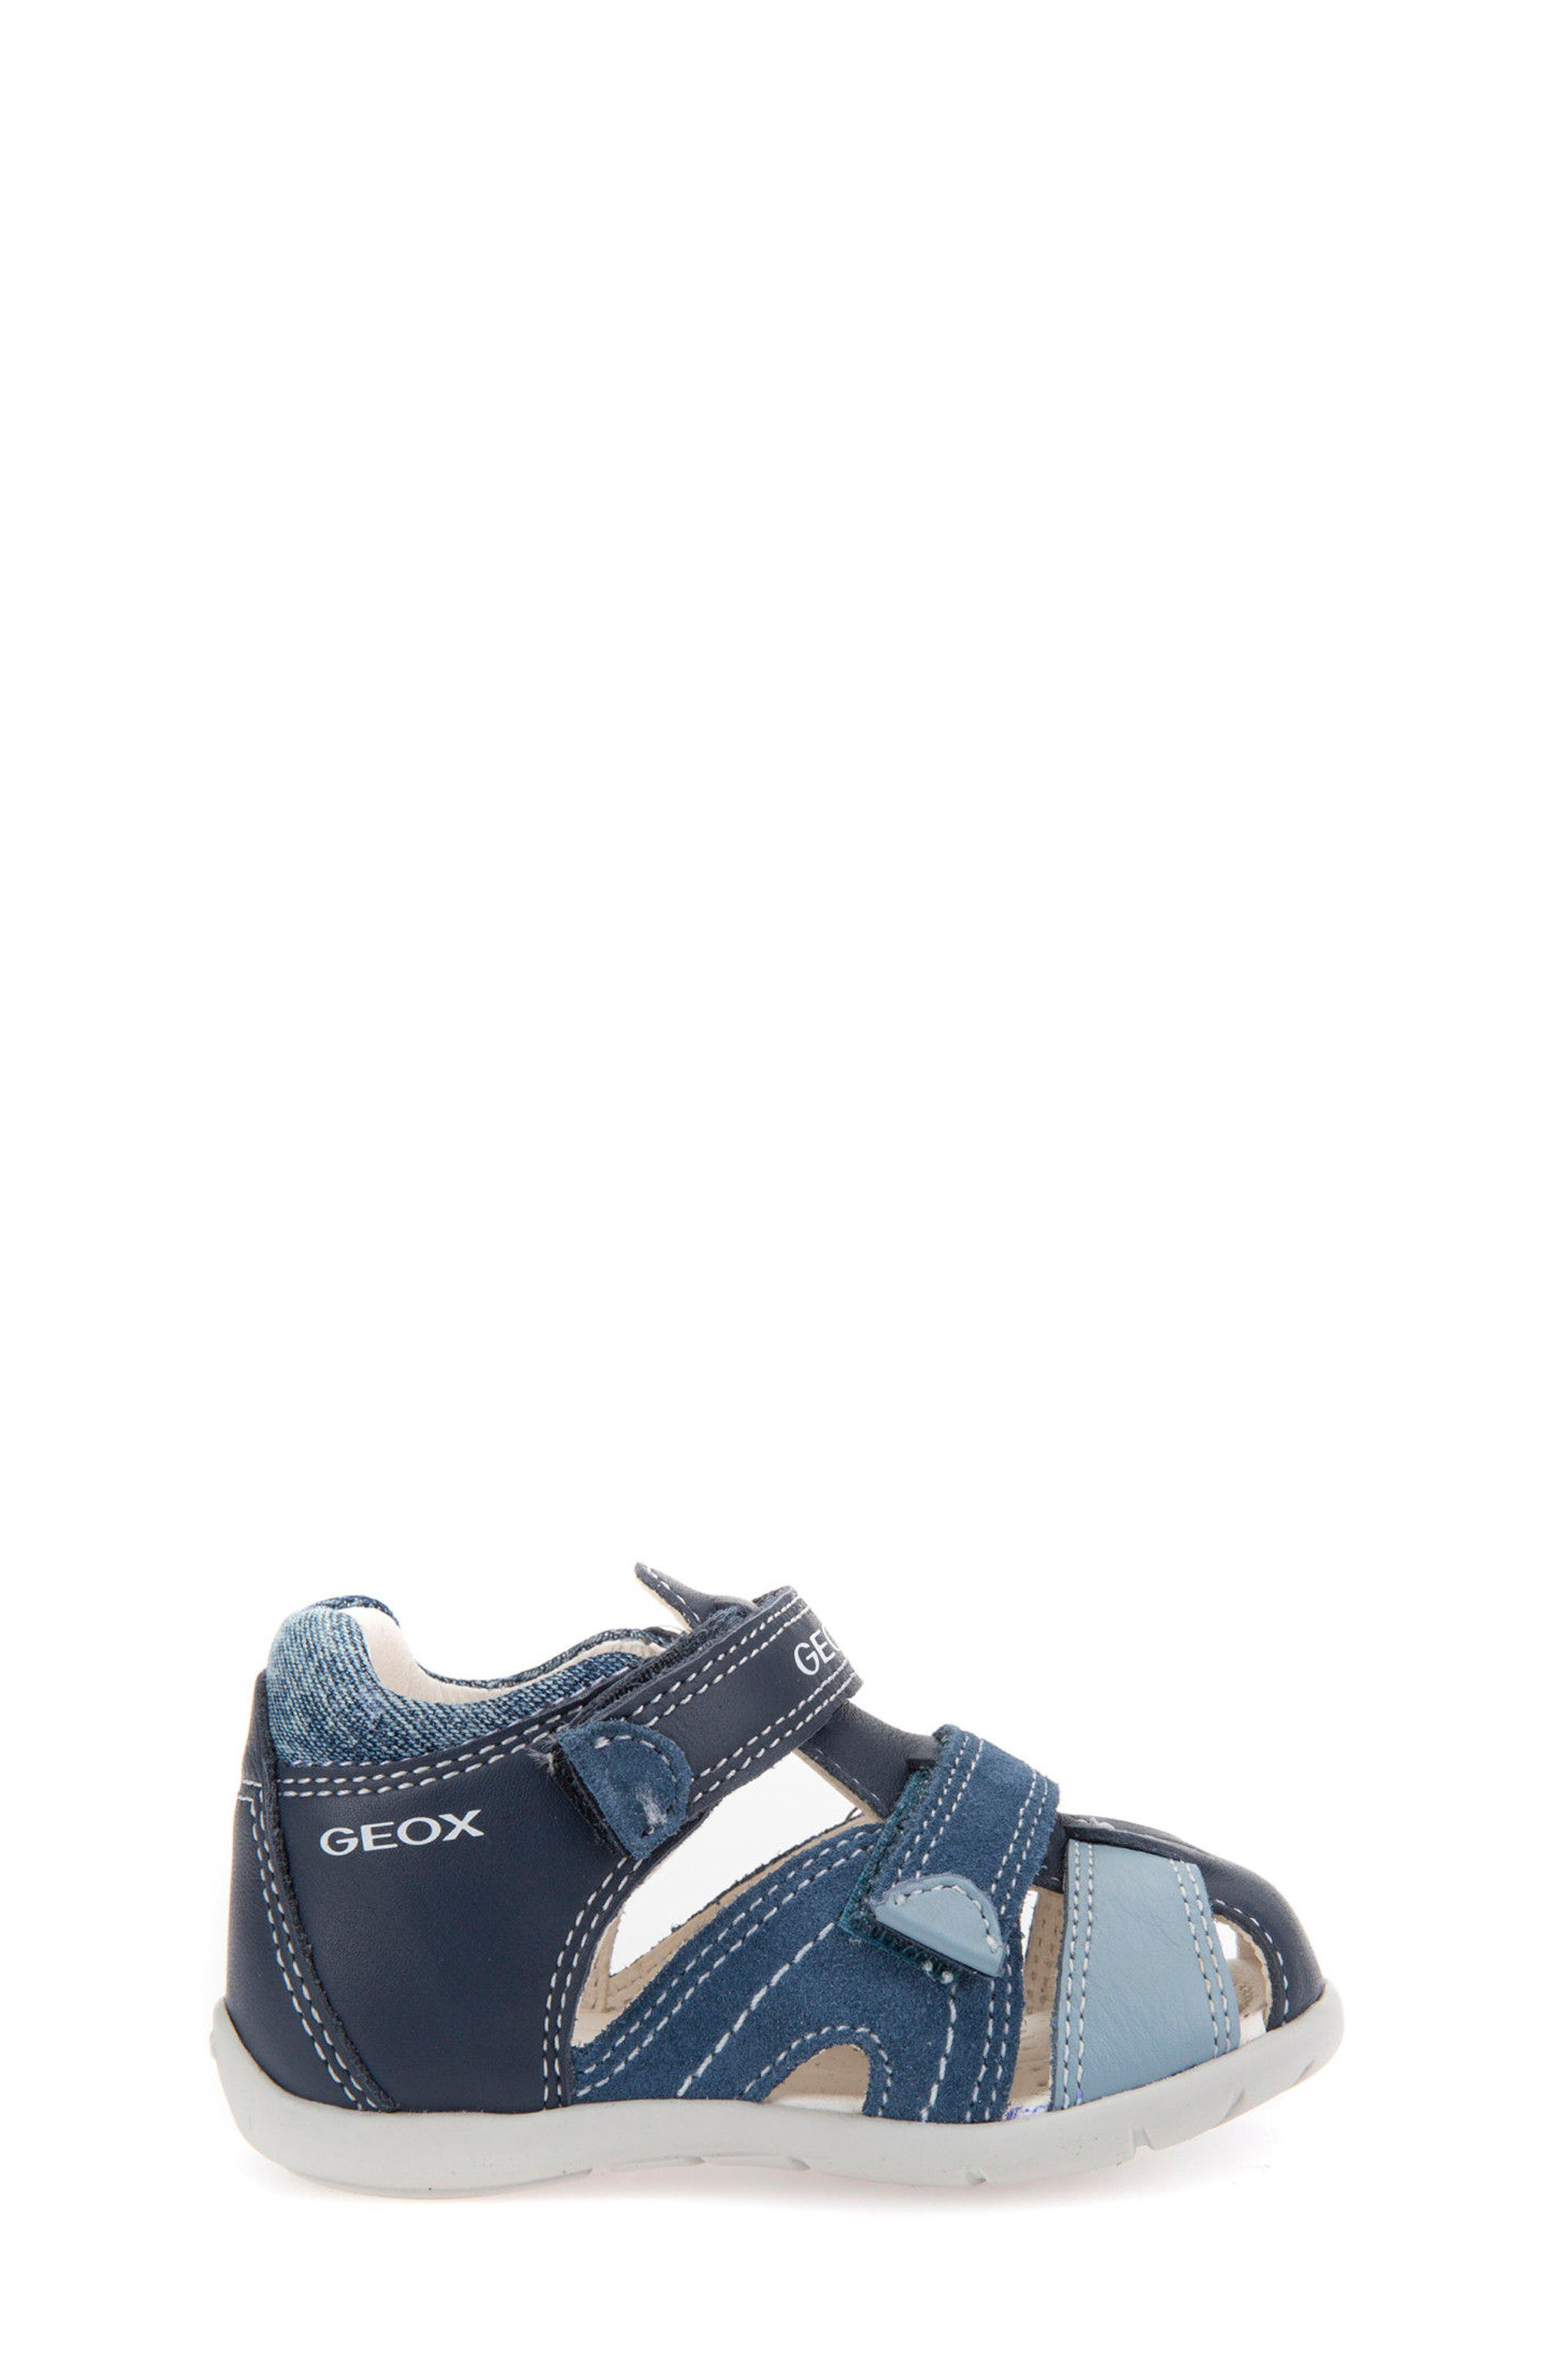 'Kaytan' Sandal,                             Alternate thumbnail 3, color,                             NAVY/ AVIO